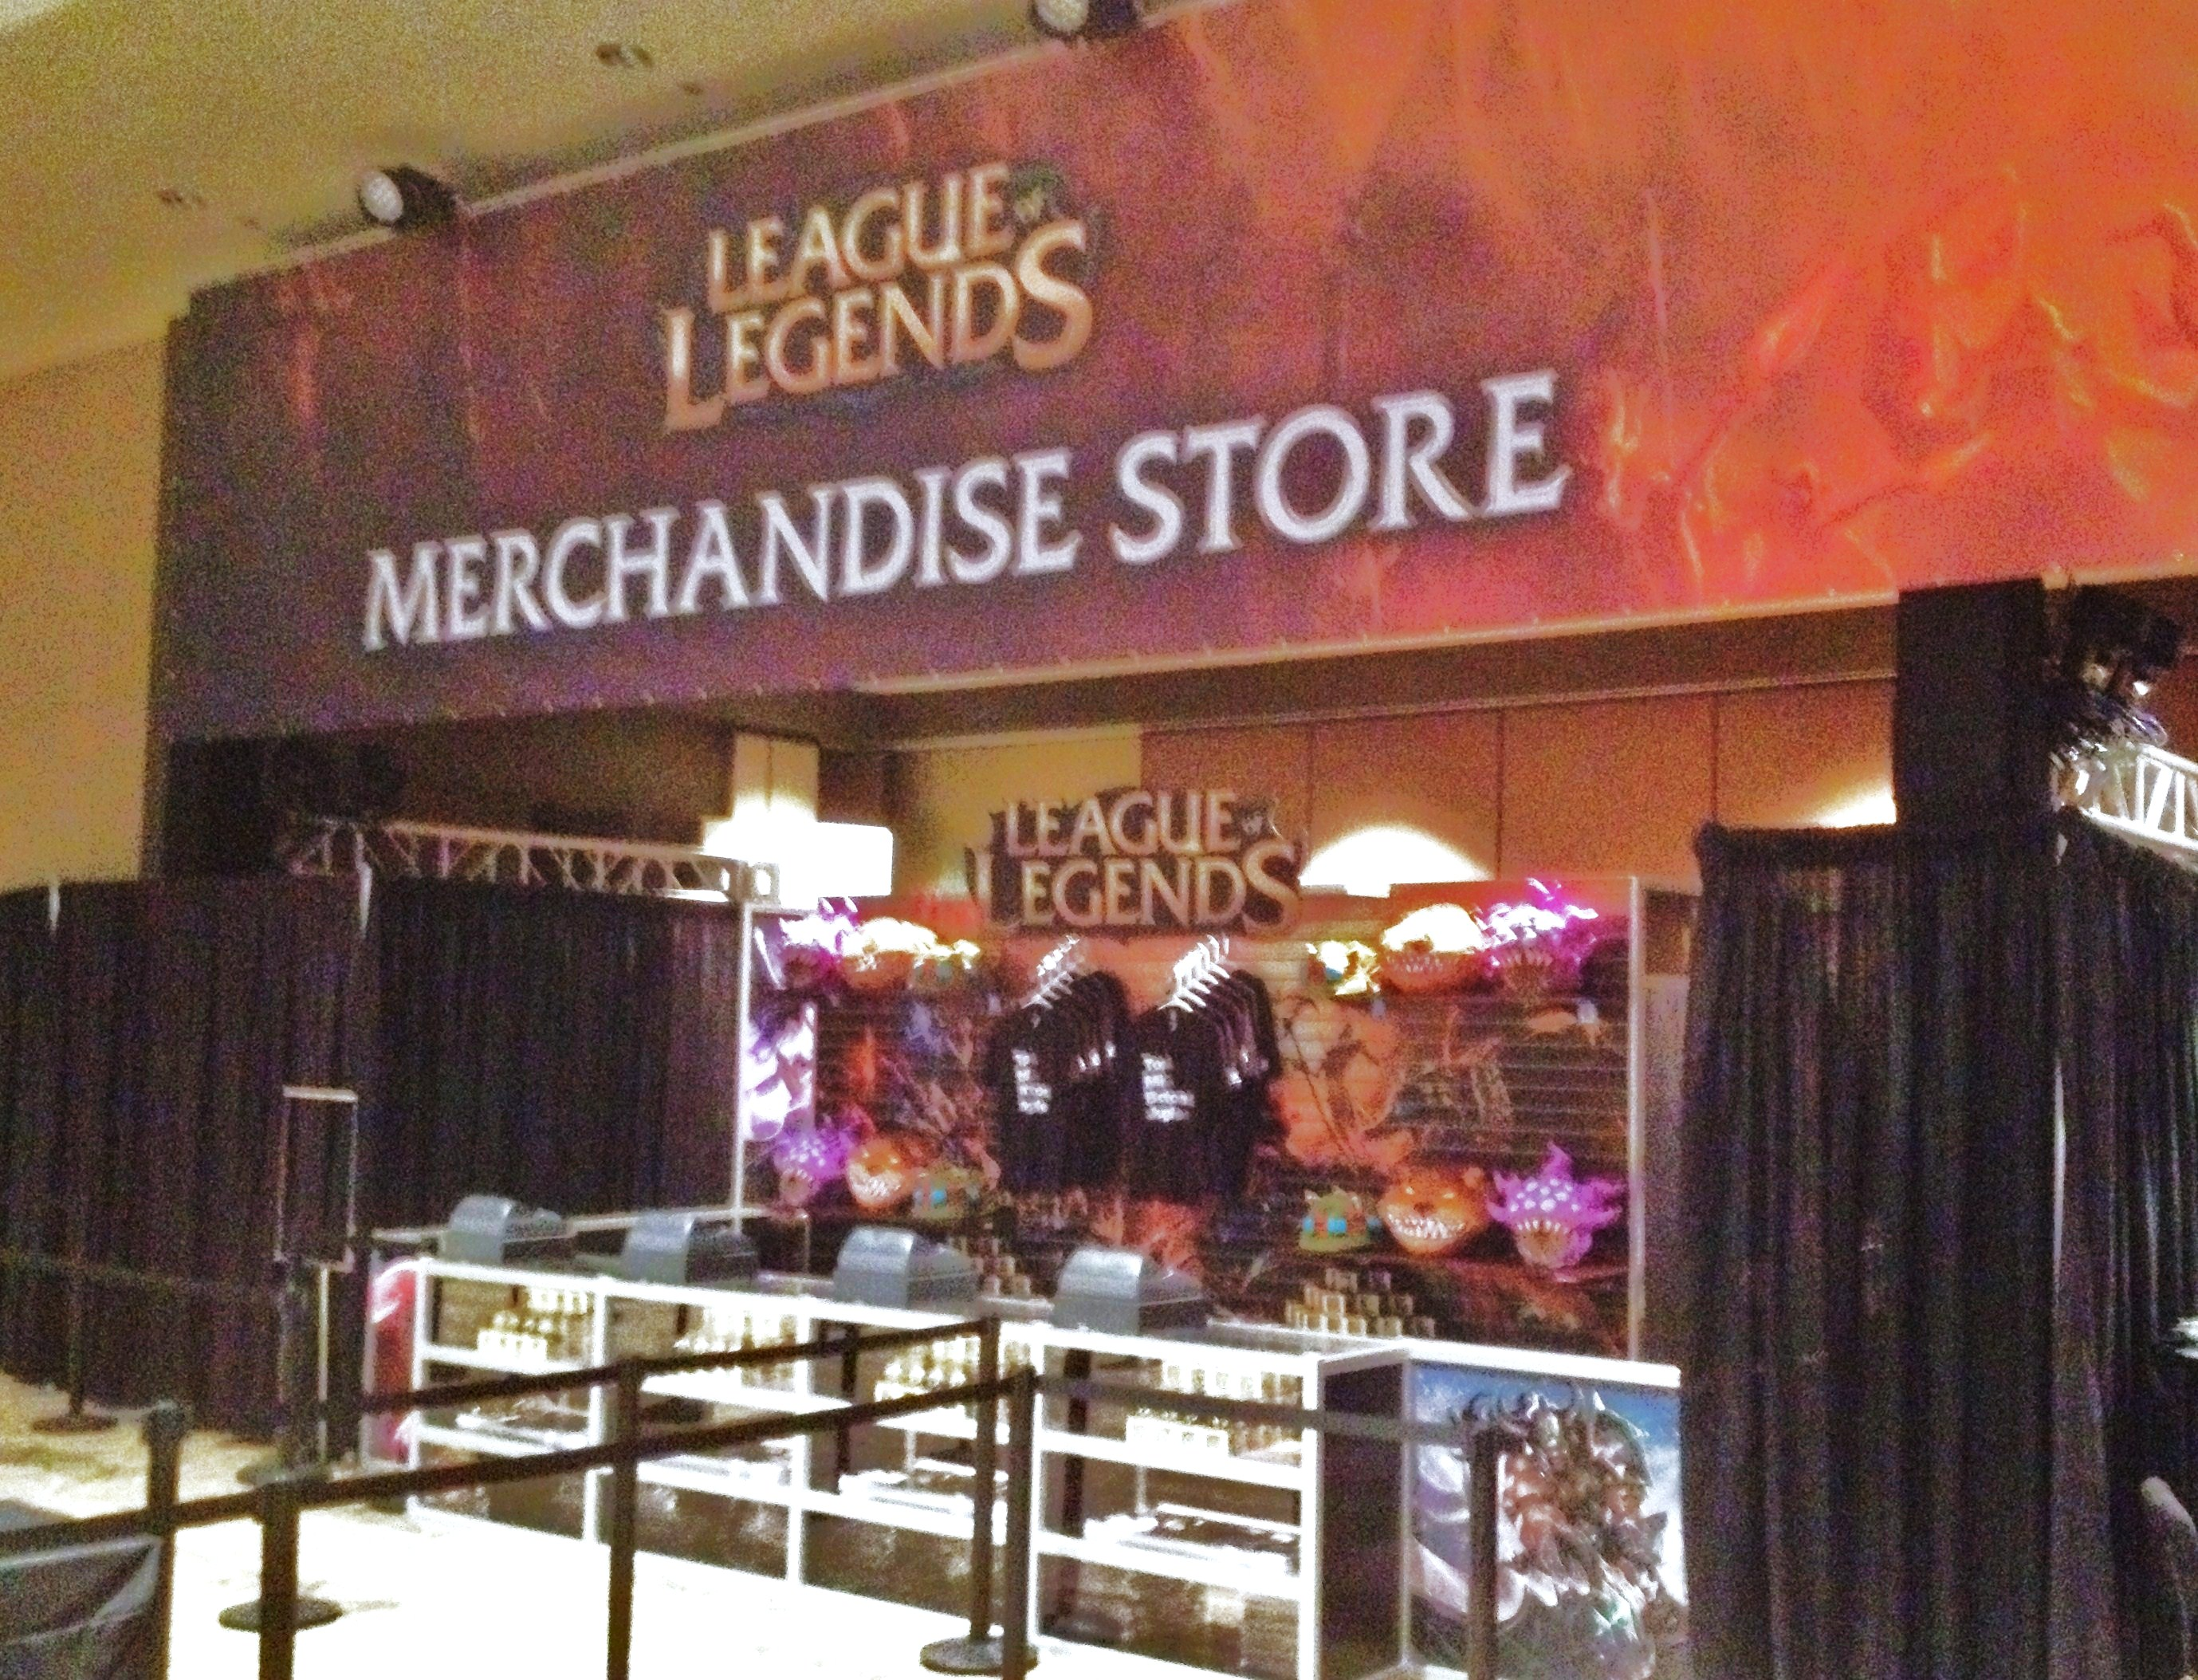 League of Legends Gear League of Legends Gear, Clothing, shirts, hoodies and toys. Search for: Home; Shop; ... League of Legends Gear 2015